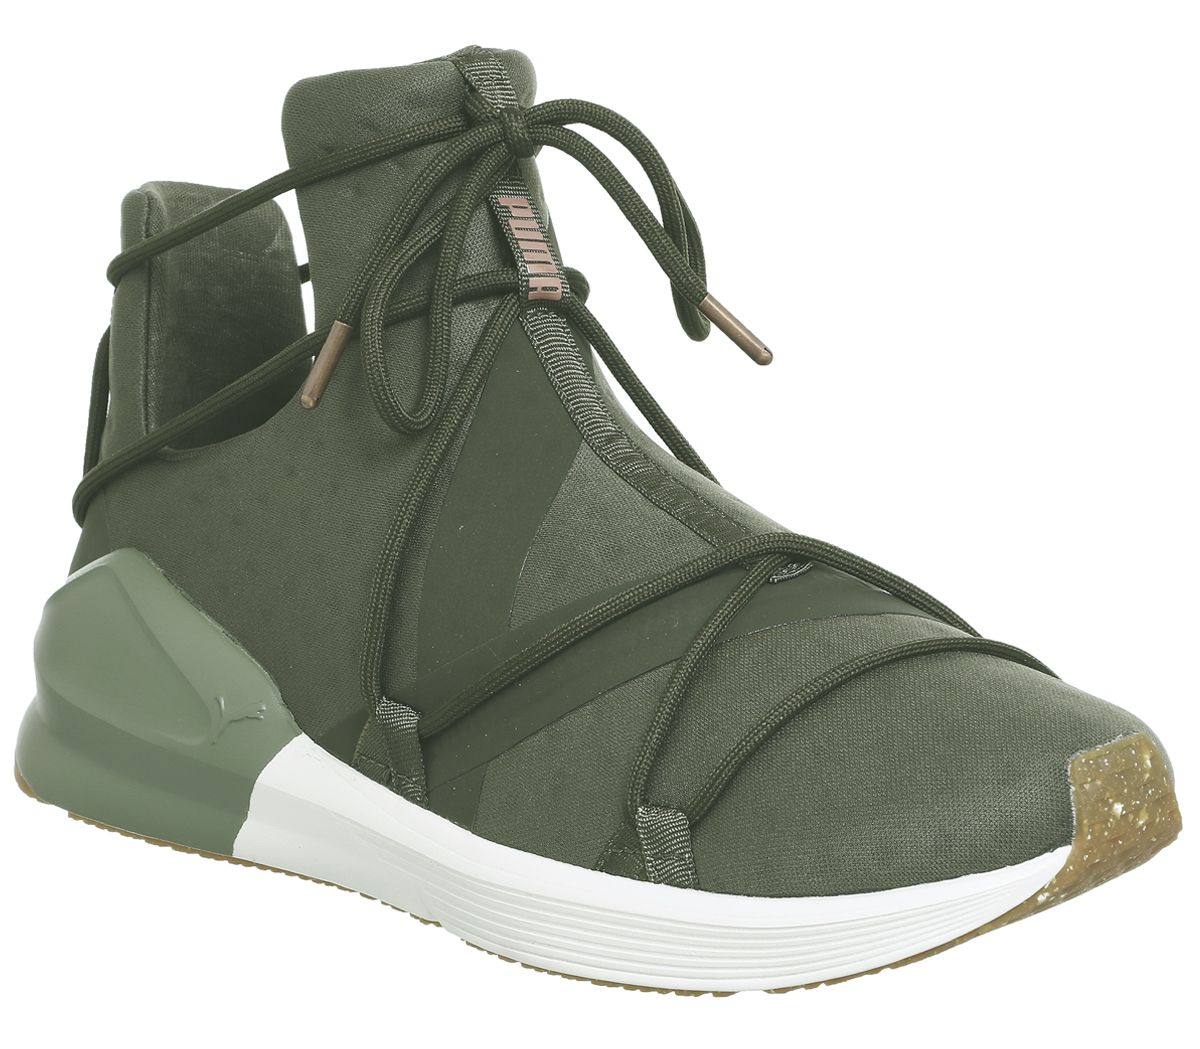 check out 020f0 a7247 Puma Fierce Rope Trainers Olive Night White Vr - Hers trainers